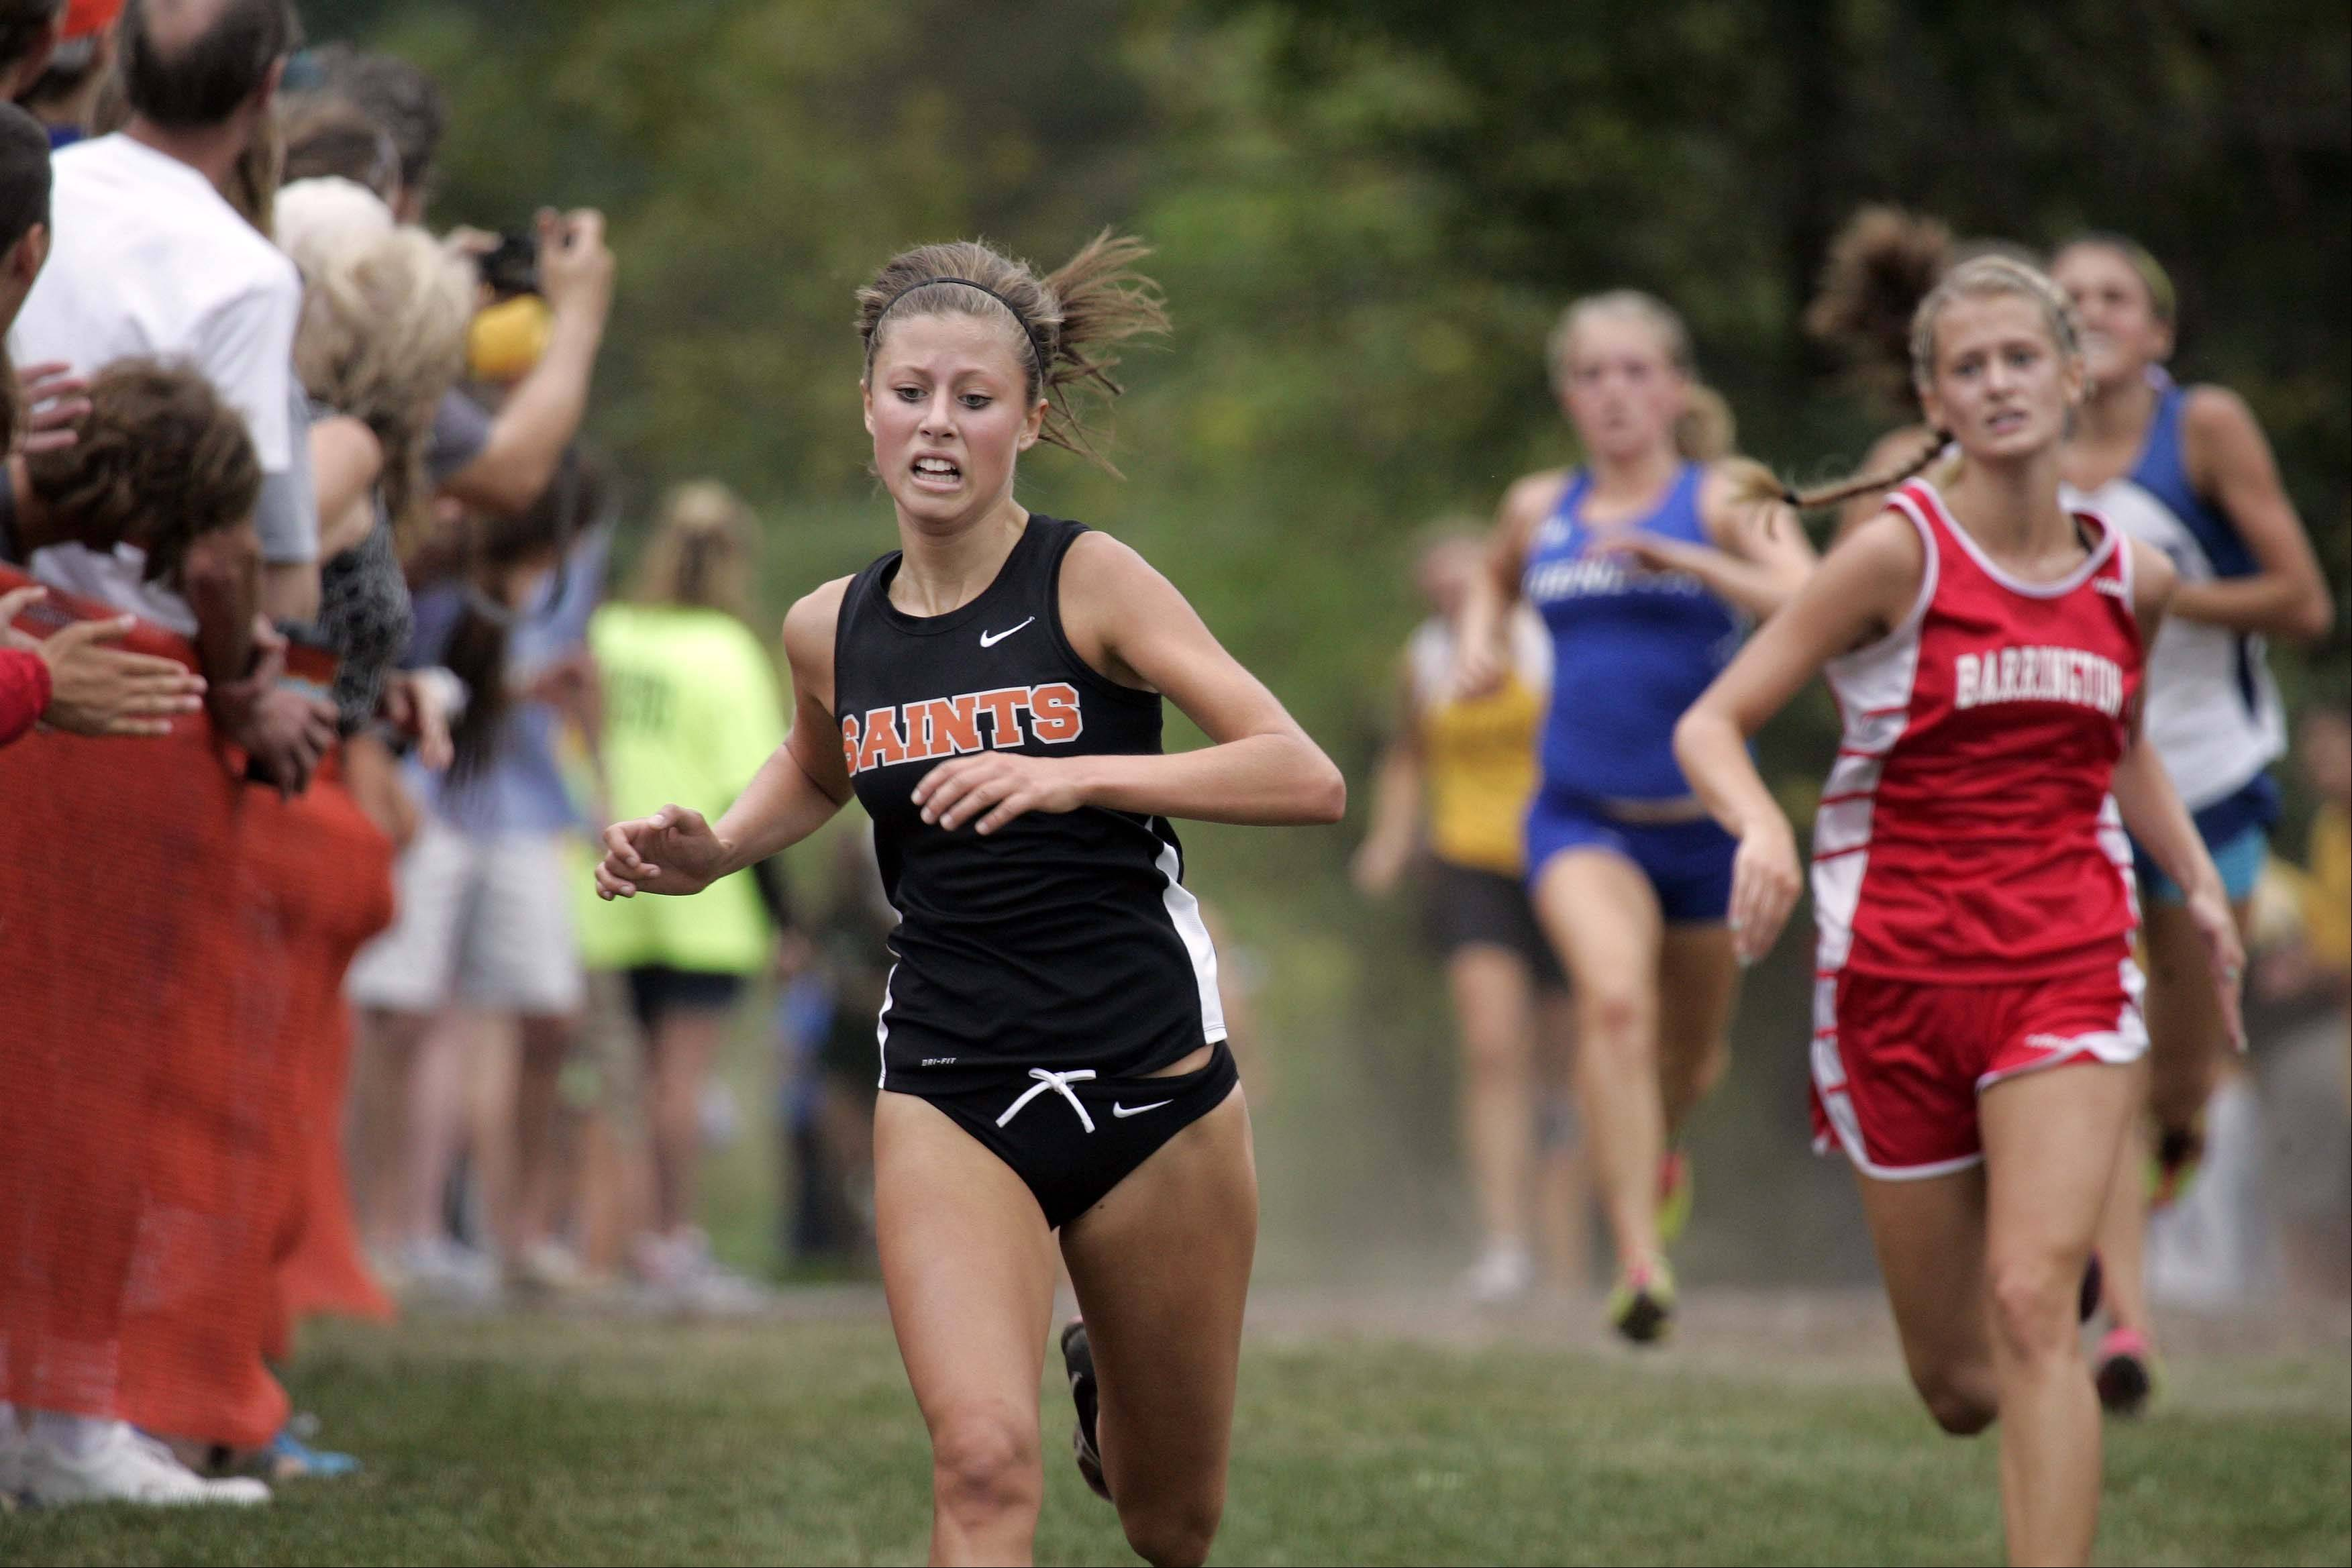 St. Charles East's Torree Scull races to ninth place during the girls varsity race at the St. Charles East cross country meet at LeRoy Oakes in St. Charles Saturday September 1, 2012.